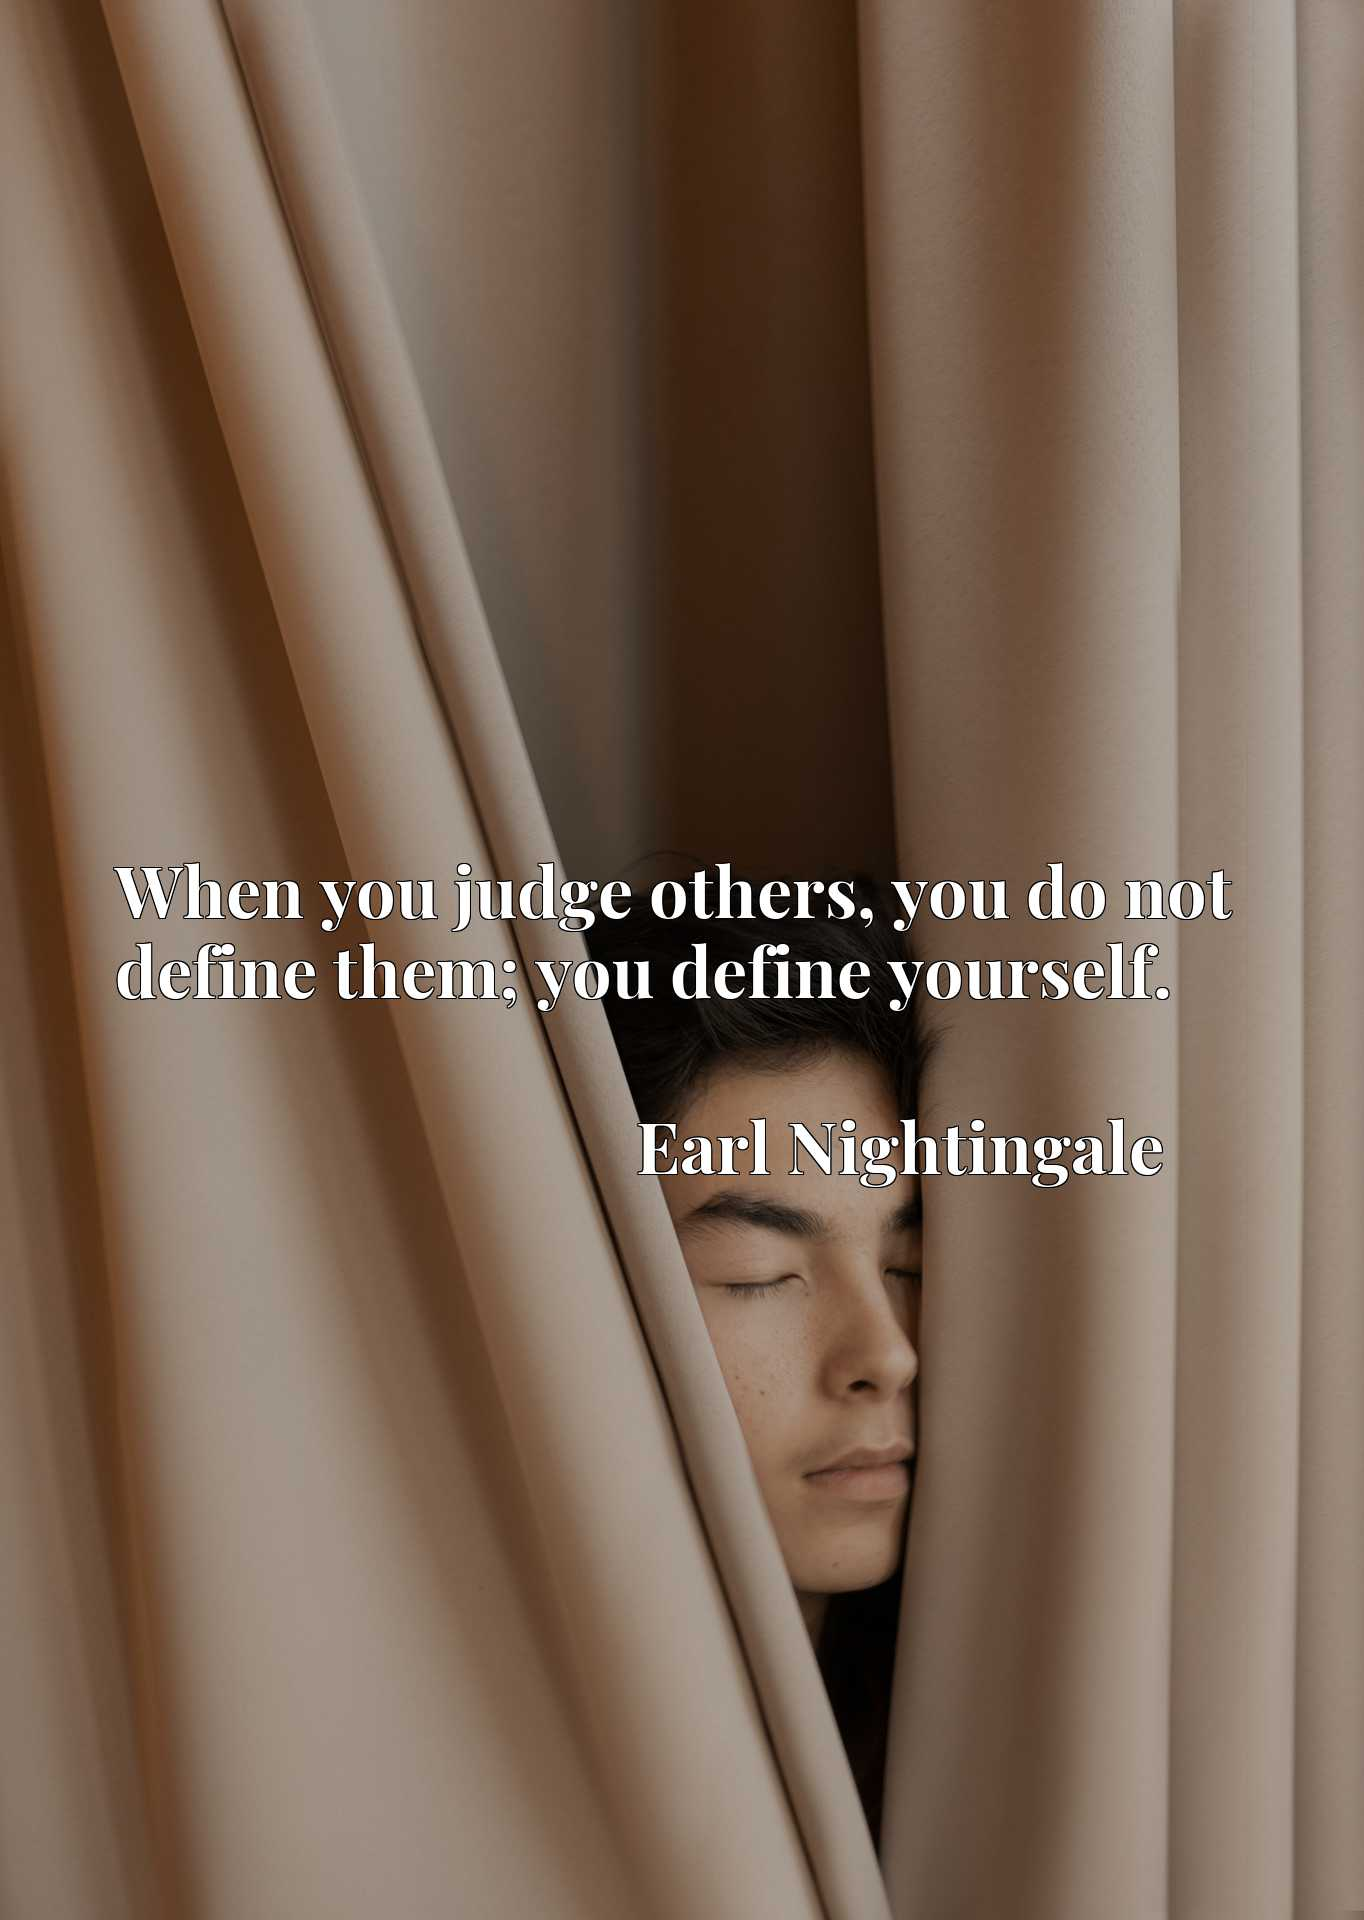 When you judge others, you do not define them; you define yourself.